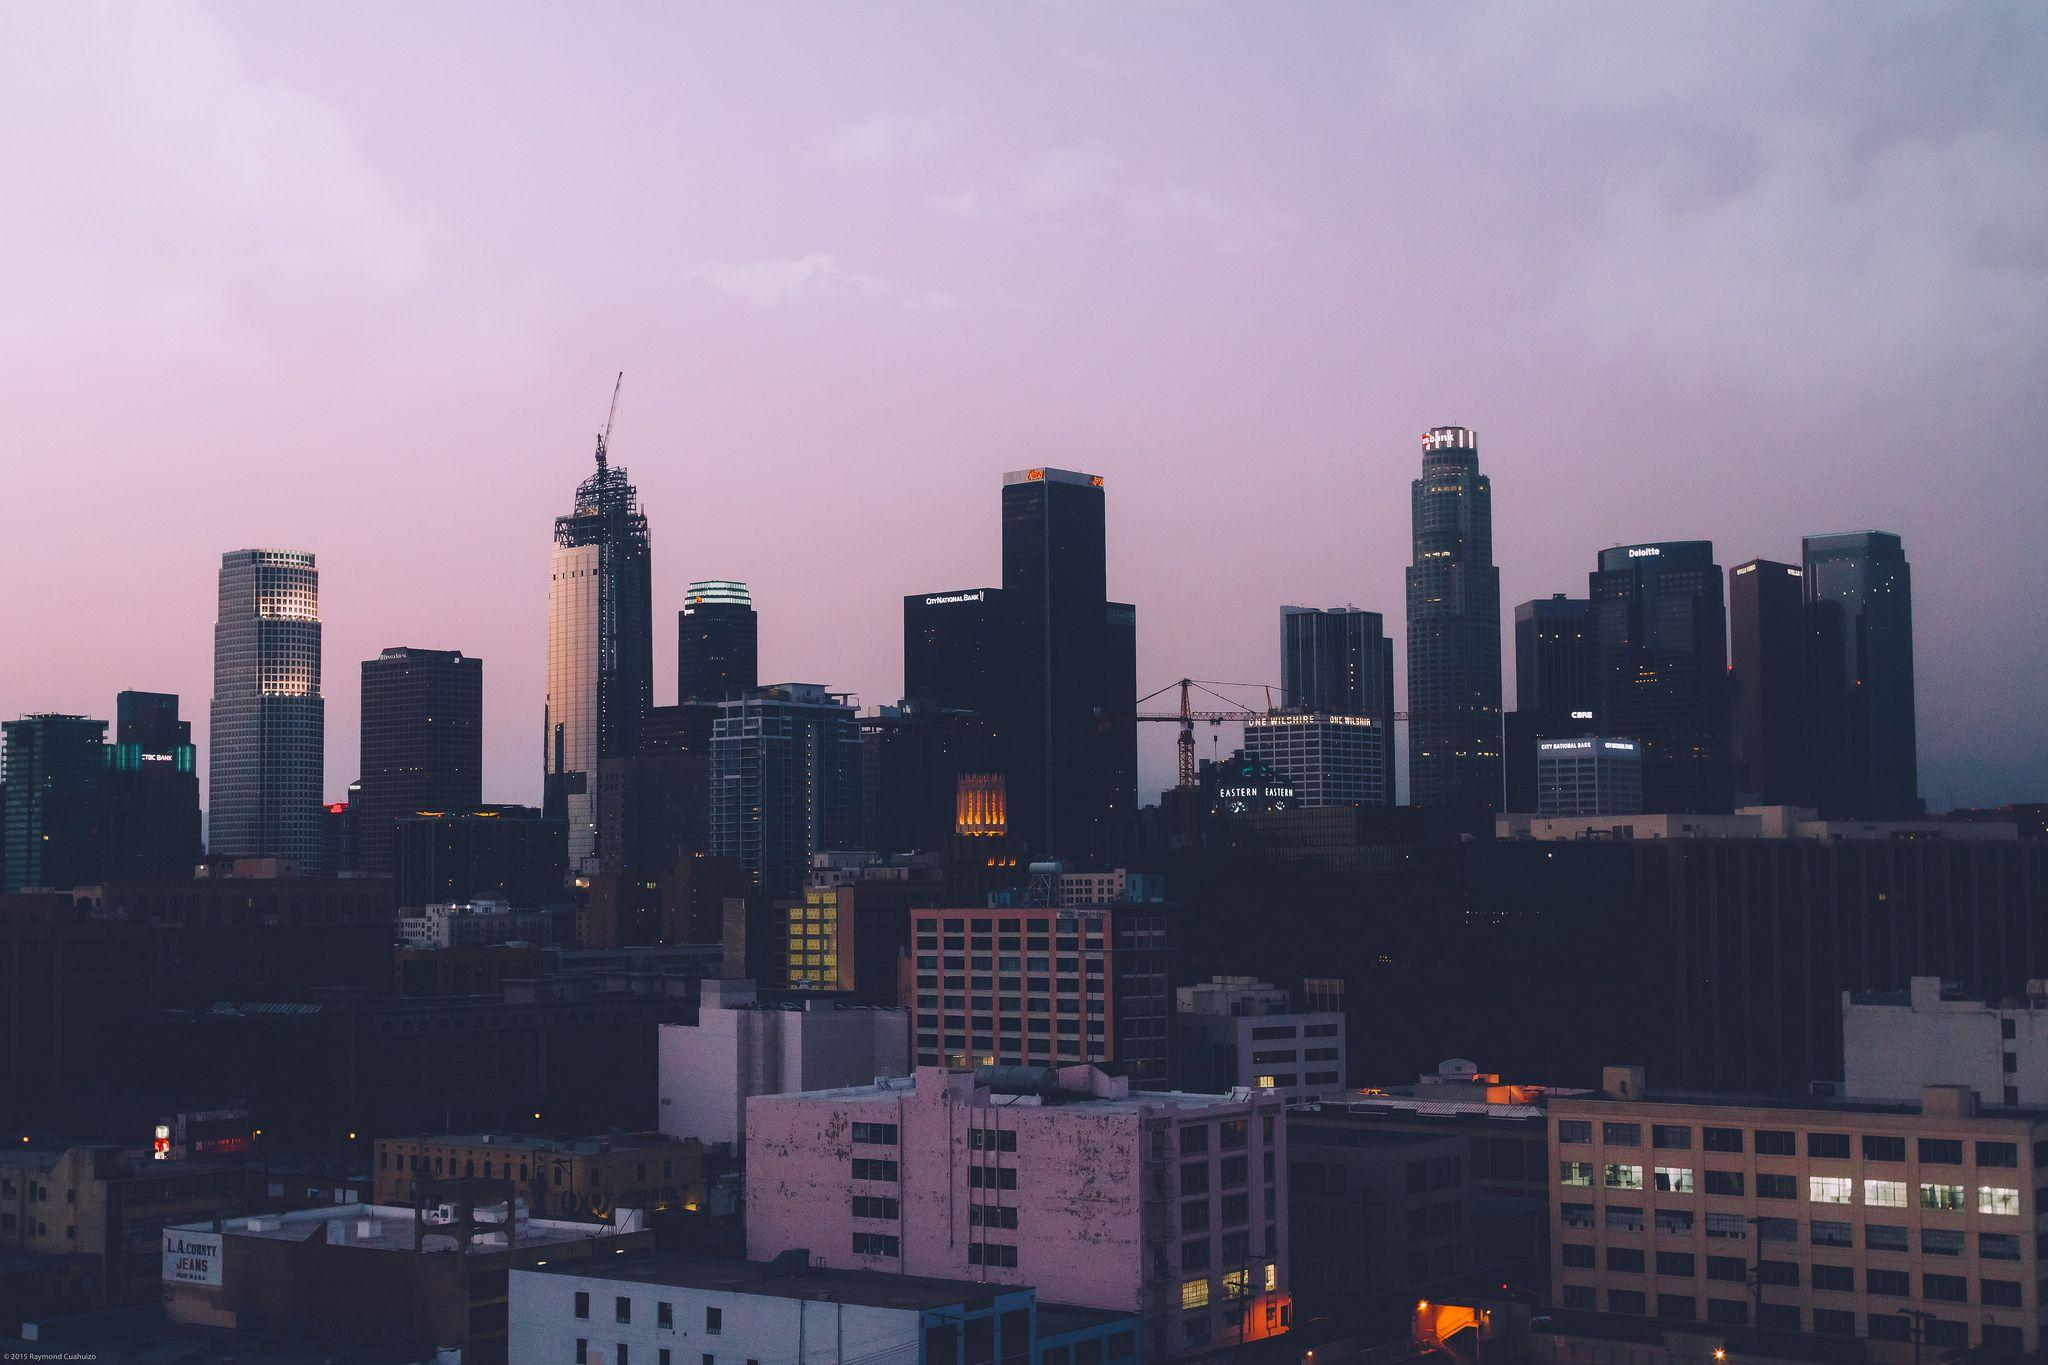 Los Angeles California [2048 x 1365]. wallpaper/ backgrounds for